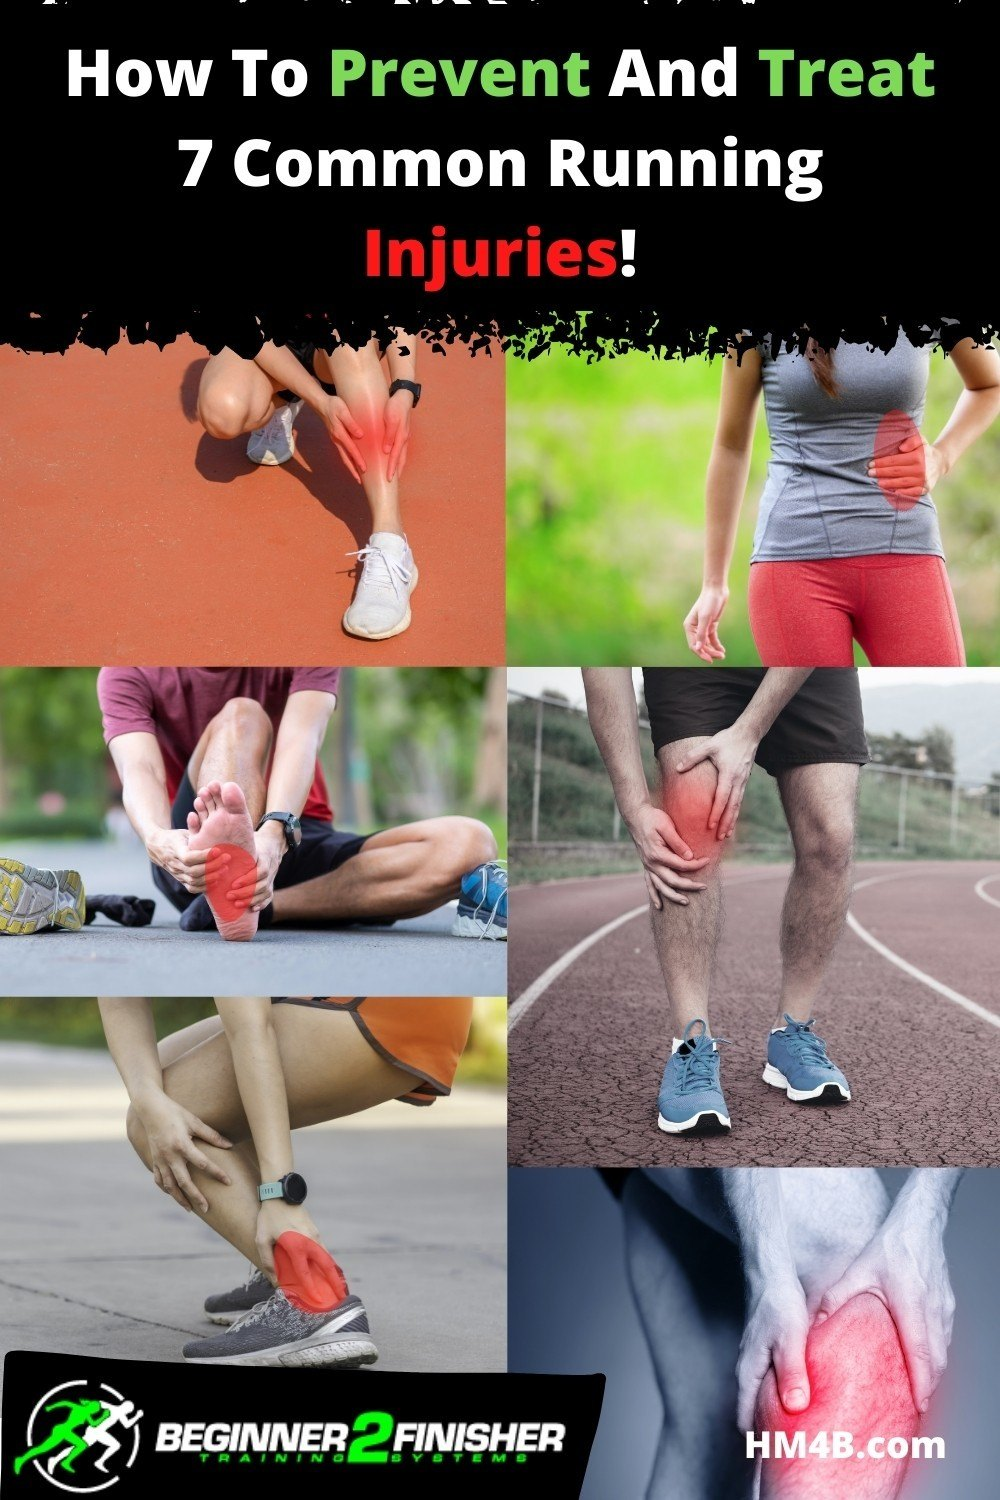 How To Prevent And Treat 8 Common Running Injuries!